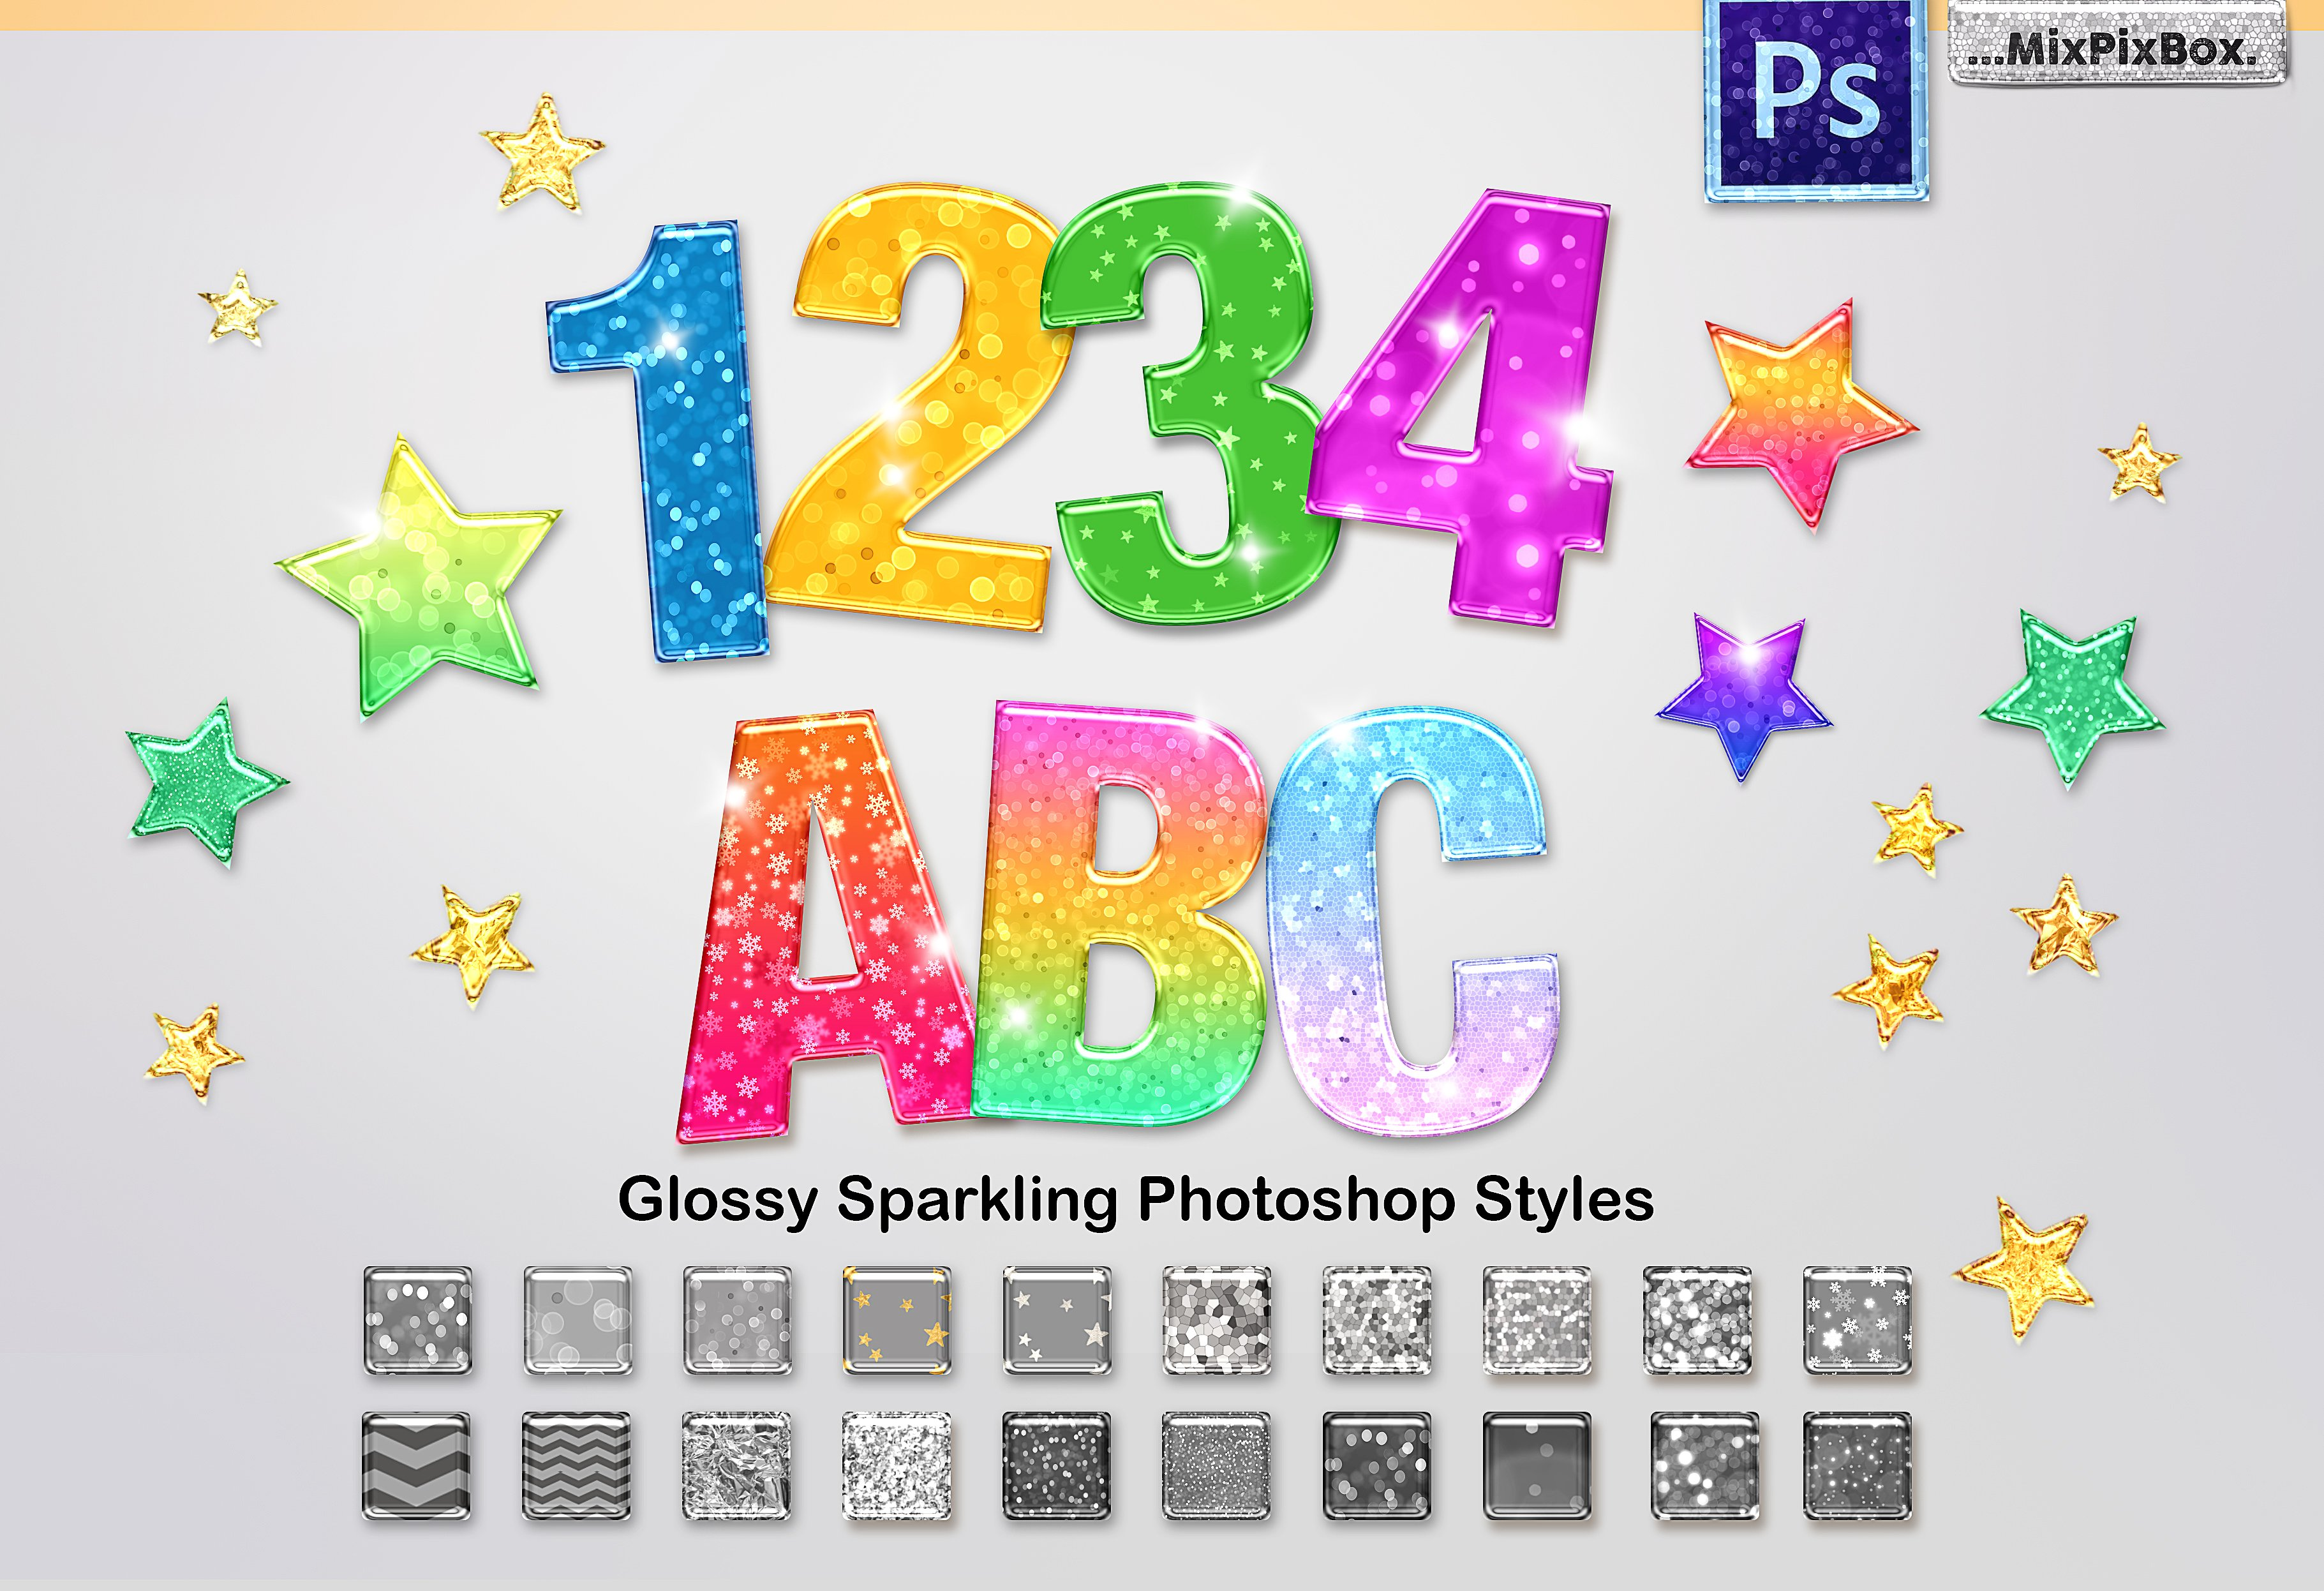 44 Sparkling Glossy Layer Styles for PS